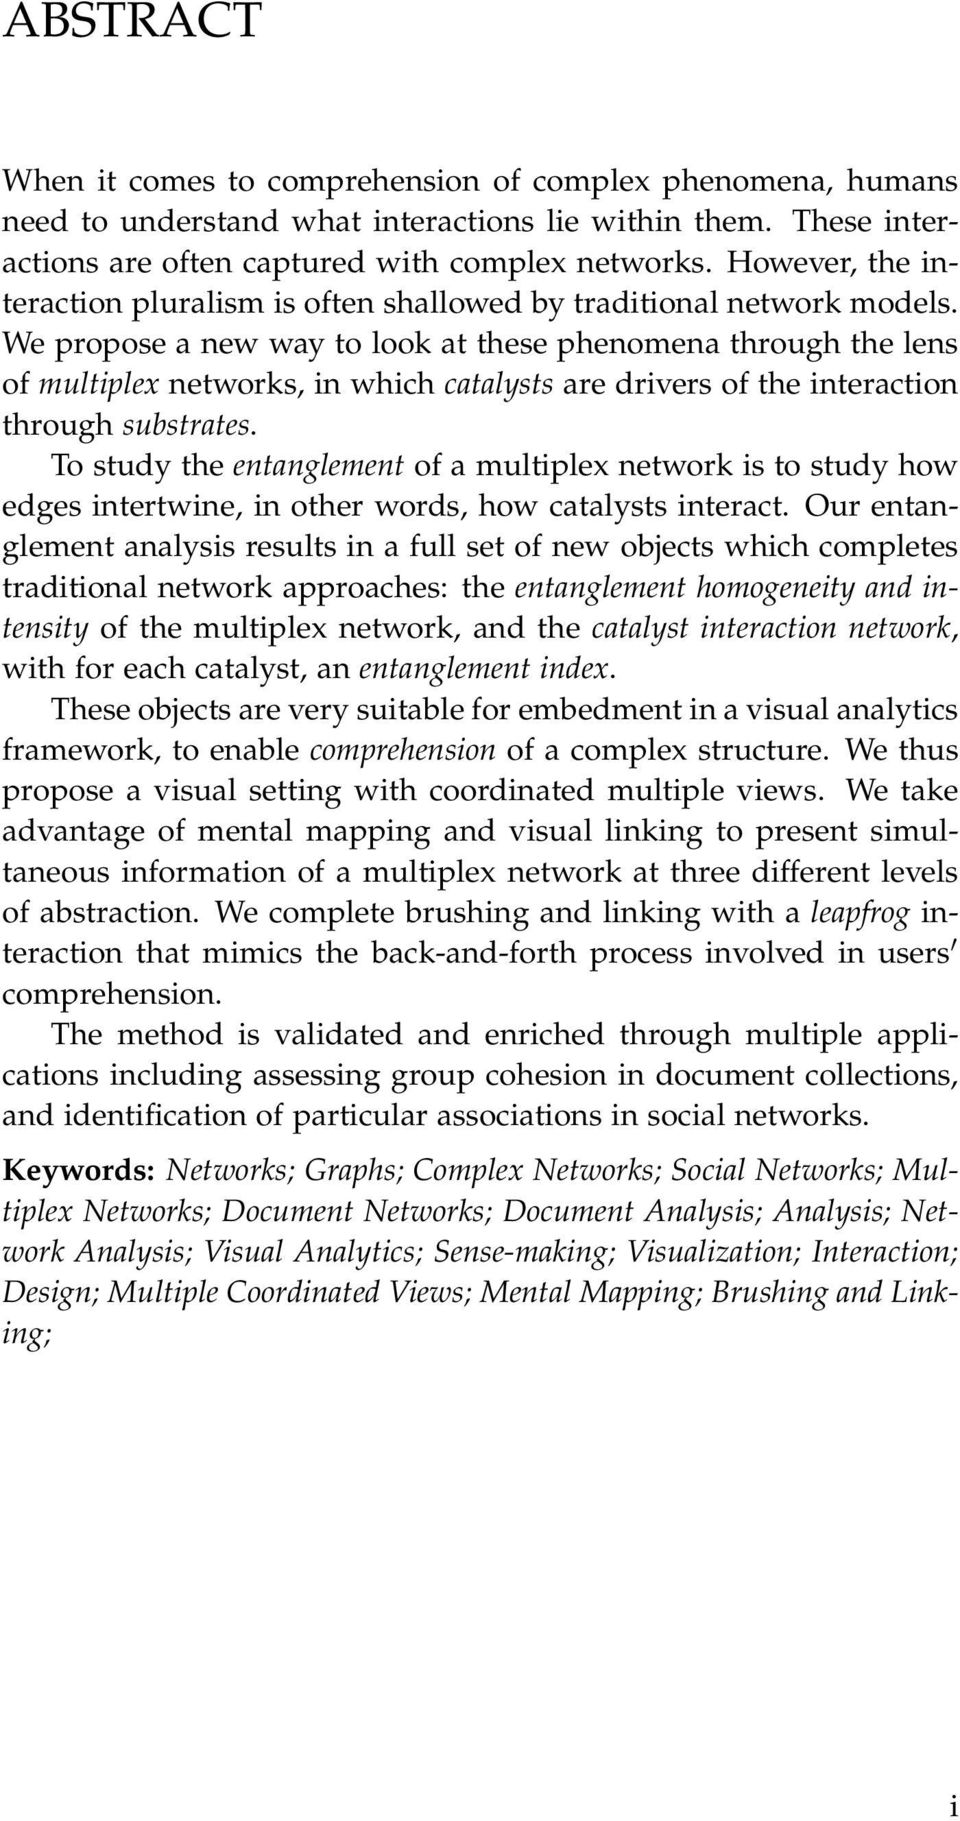 We propose a new way to look at these phenomena through the lens of multiplex networks, in which catalysts are drivers of the interaction through substrates.